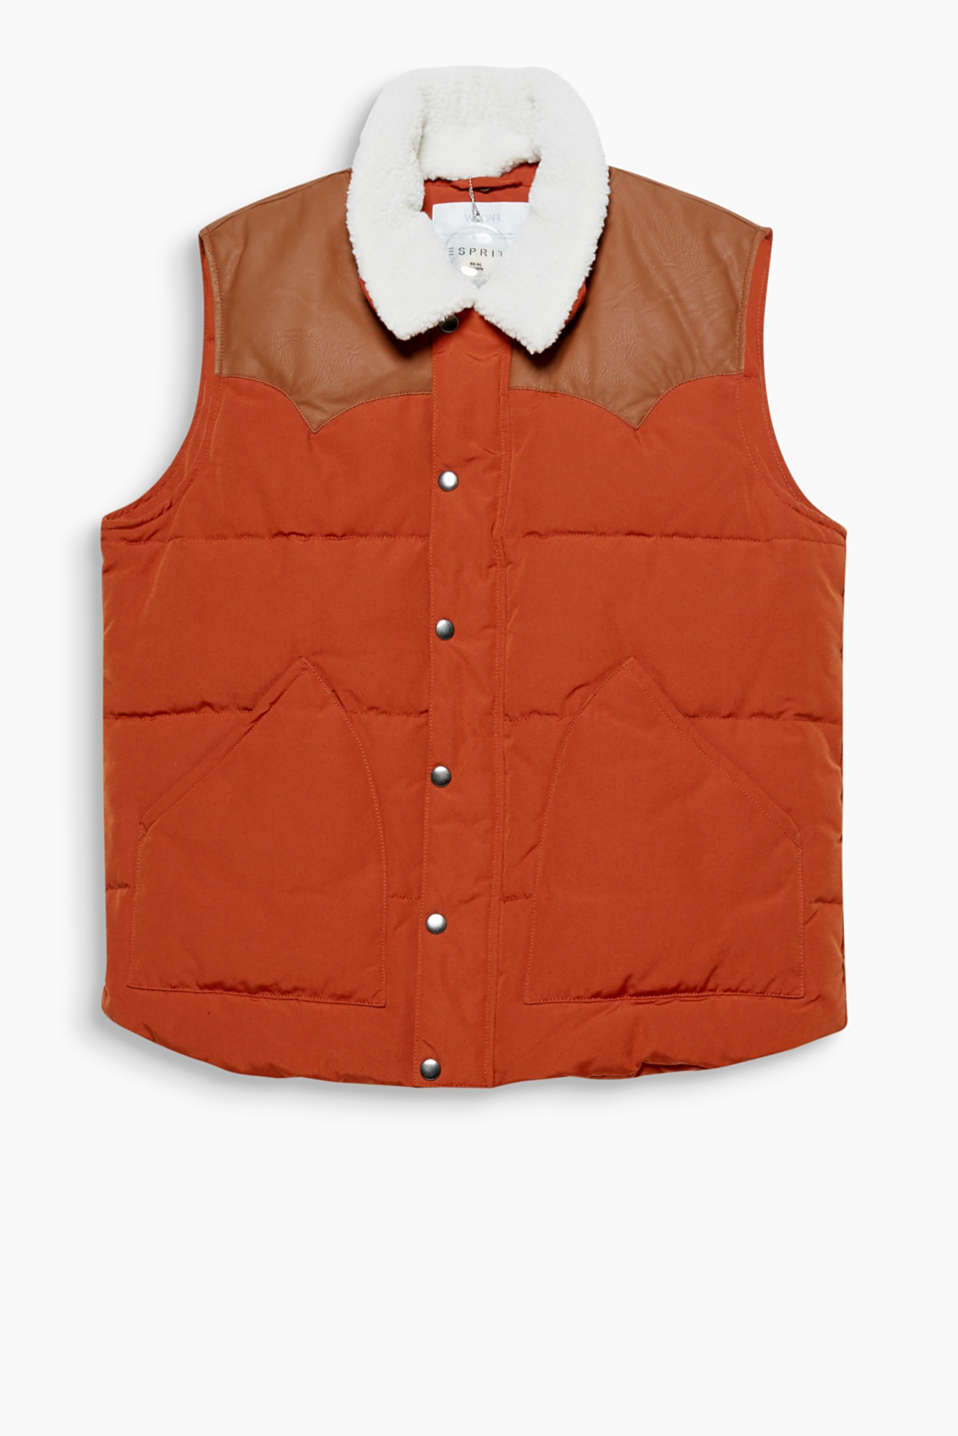 A cool look: this gilet with an RDS-certified down/feather filling features a faux leather trim